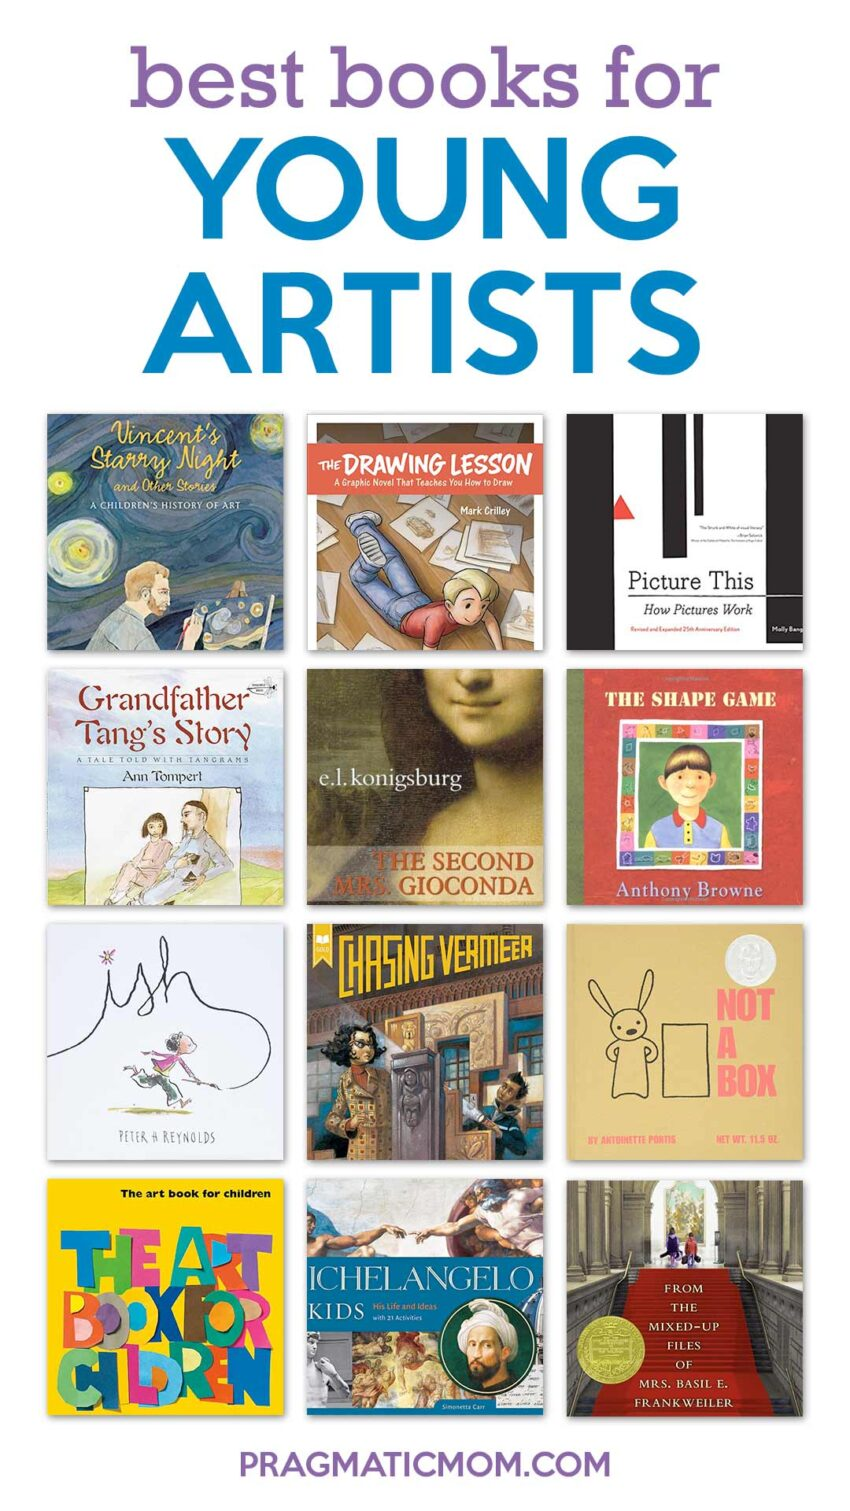 Best Books for Young Artists